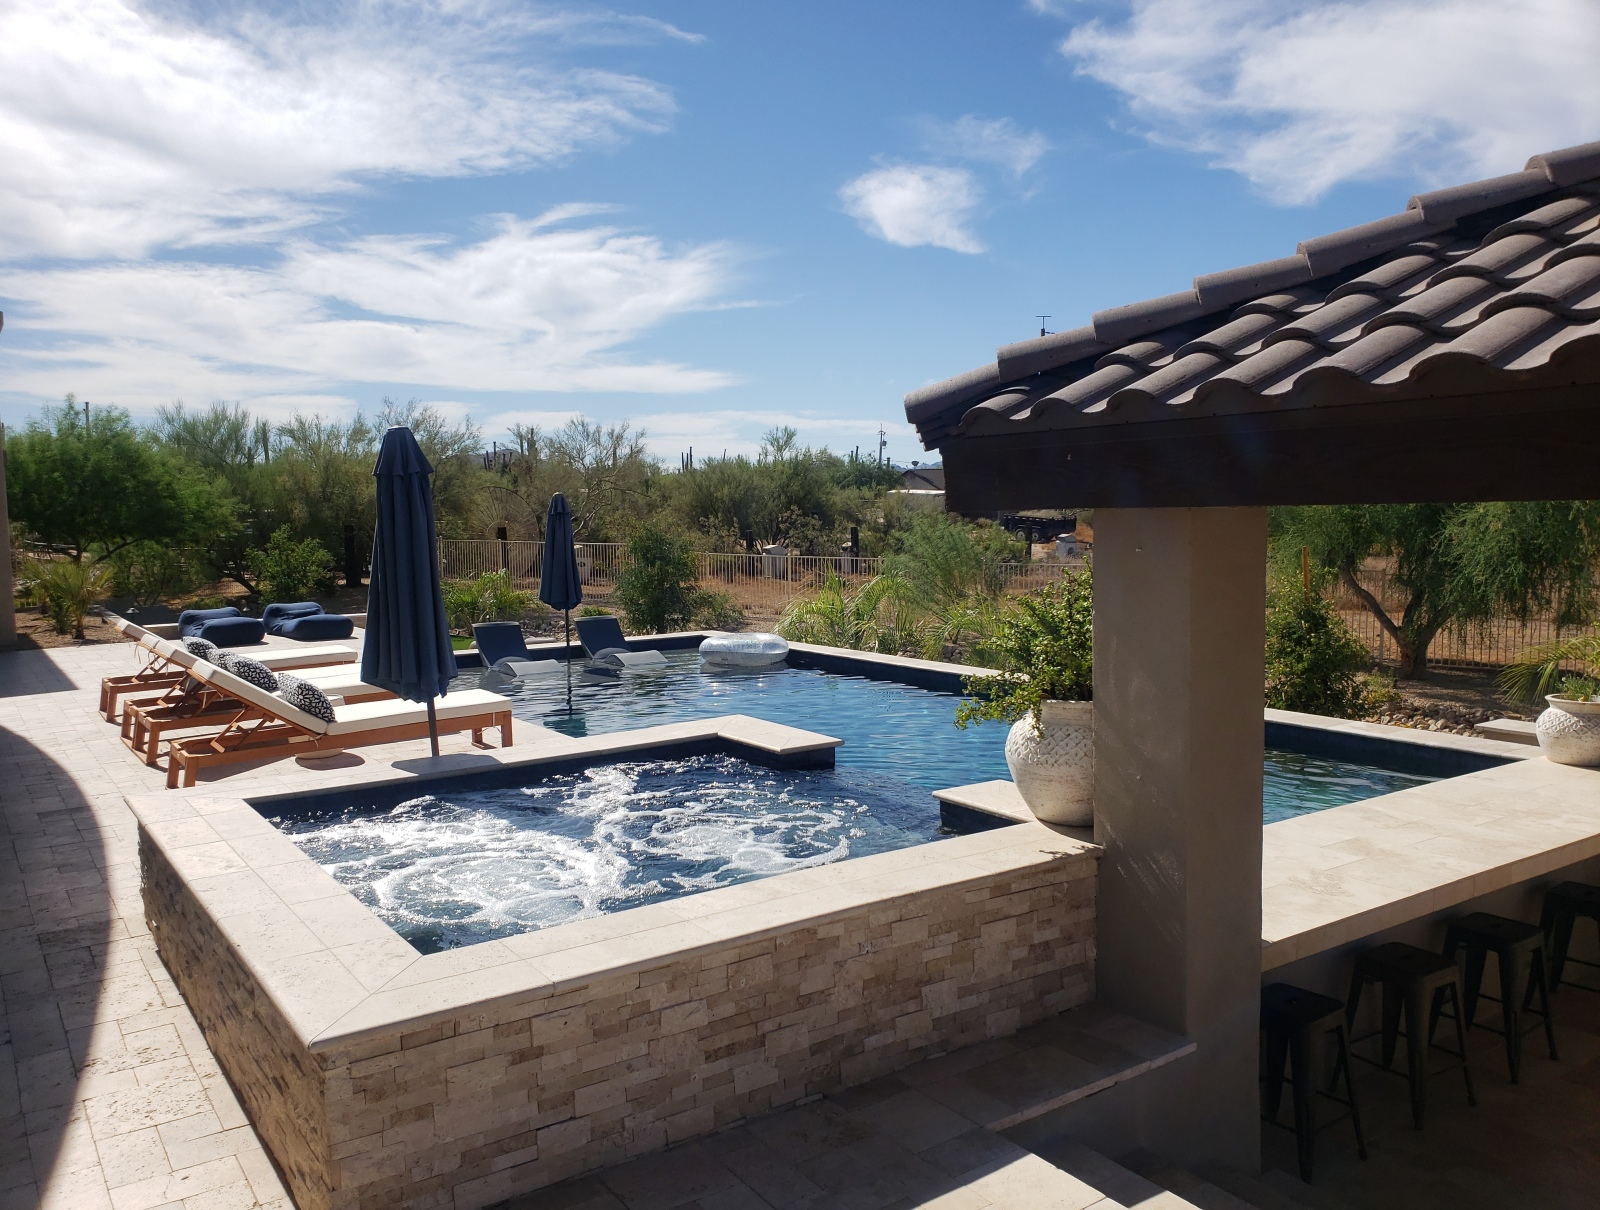 Travertine spa surround matches the lower level pool retainer wall. Desert Crest pool builder's Phoenix client now has one fabulous backyard!